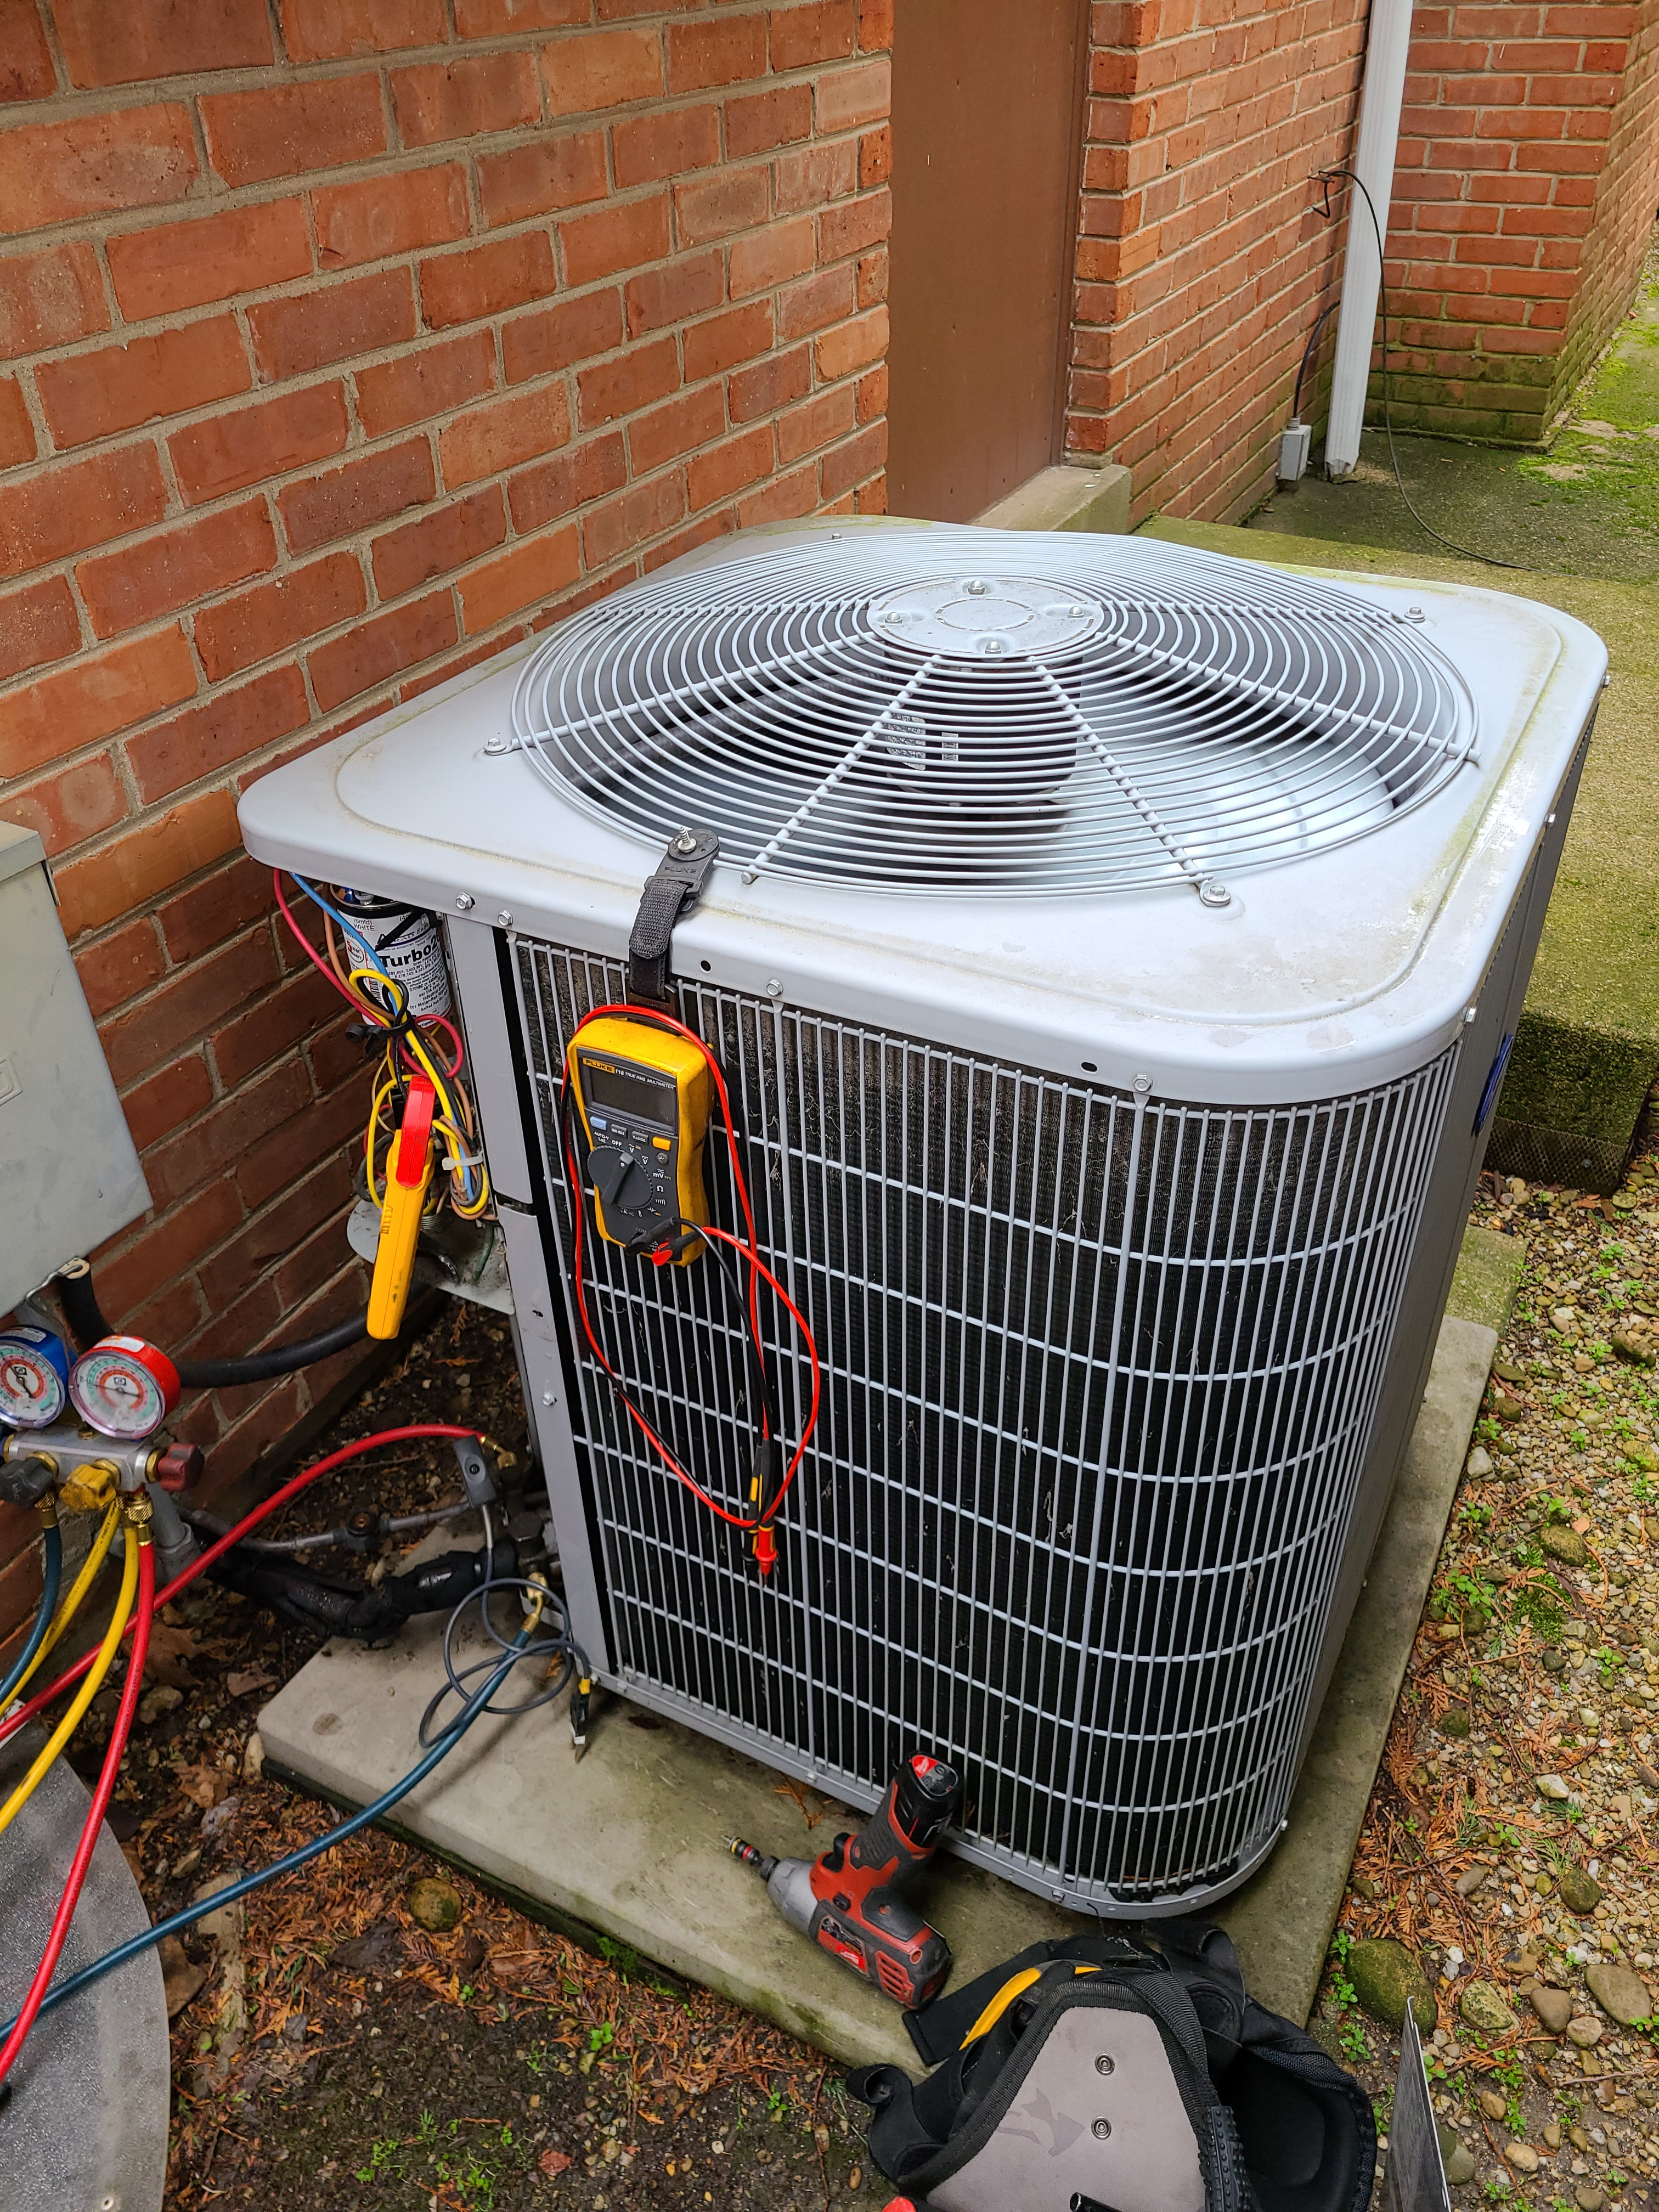 Carrier air conditioning system cleaned and checked, ready for spring.